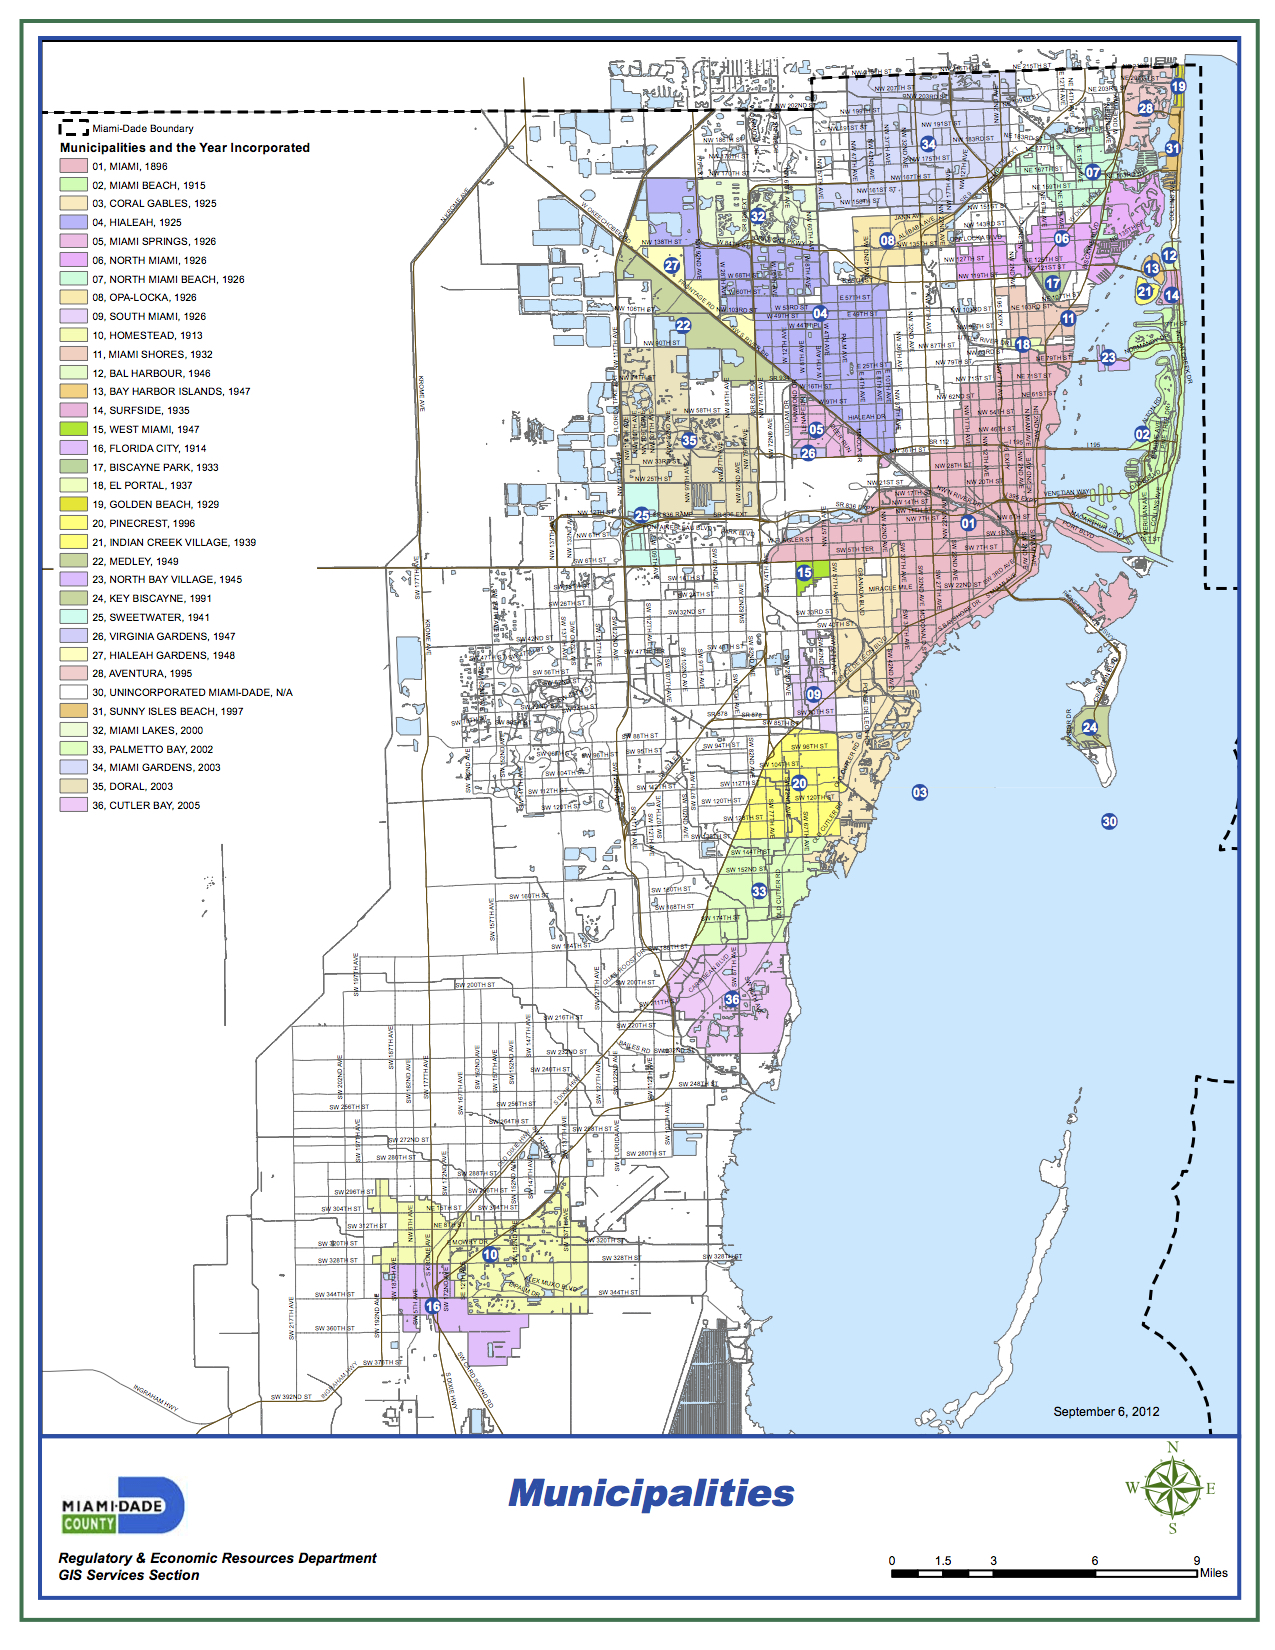 Worksheet. MiamiDade may get a few new cities  The New Tropic